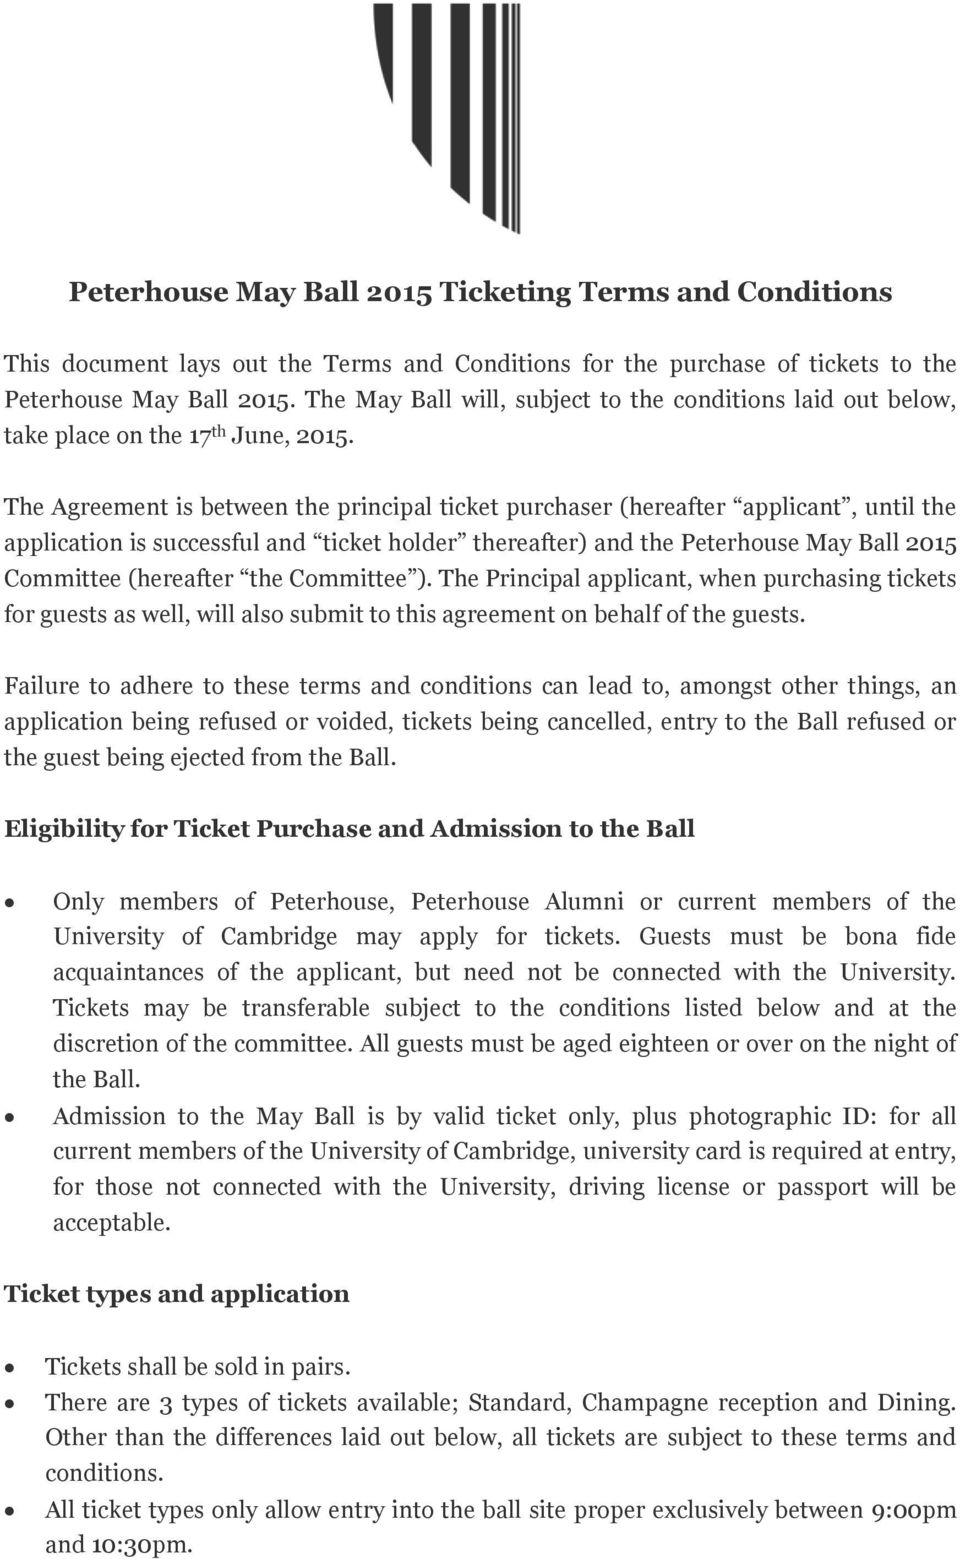 The Agreement is between the principal ticket purchaser (hereafter applicant, until the application is successful and ticket holder thereafter) and the Peterhouse May Ball 2015 Committee (hereafter